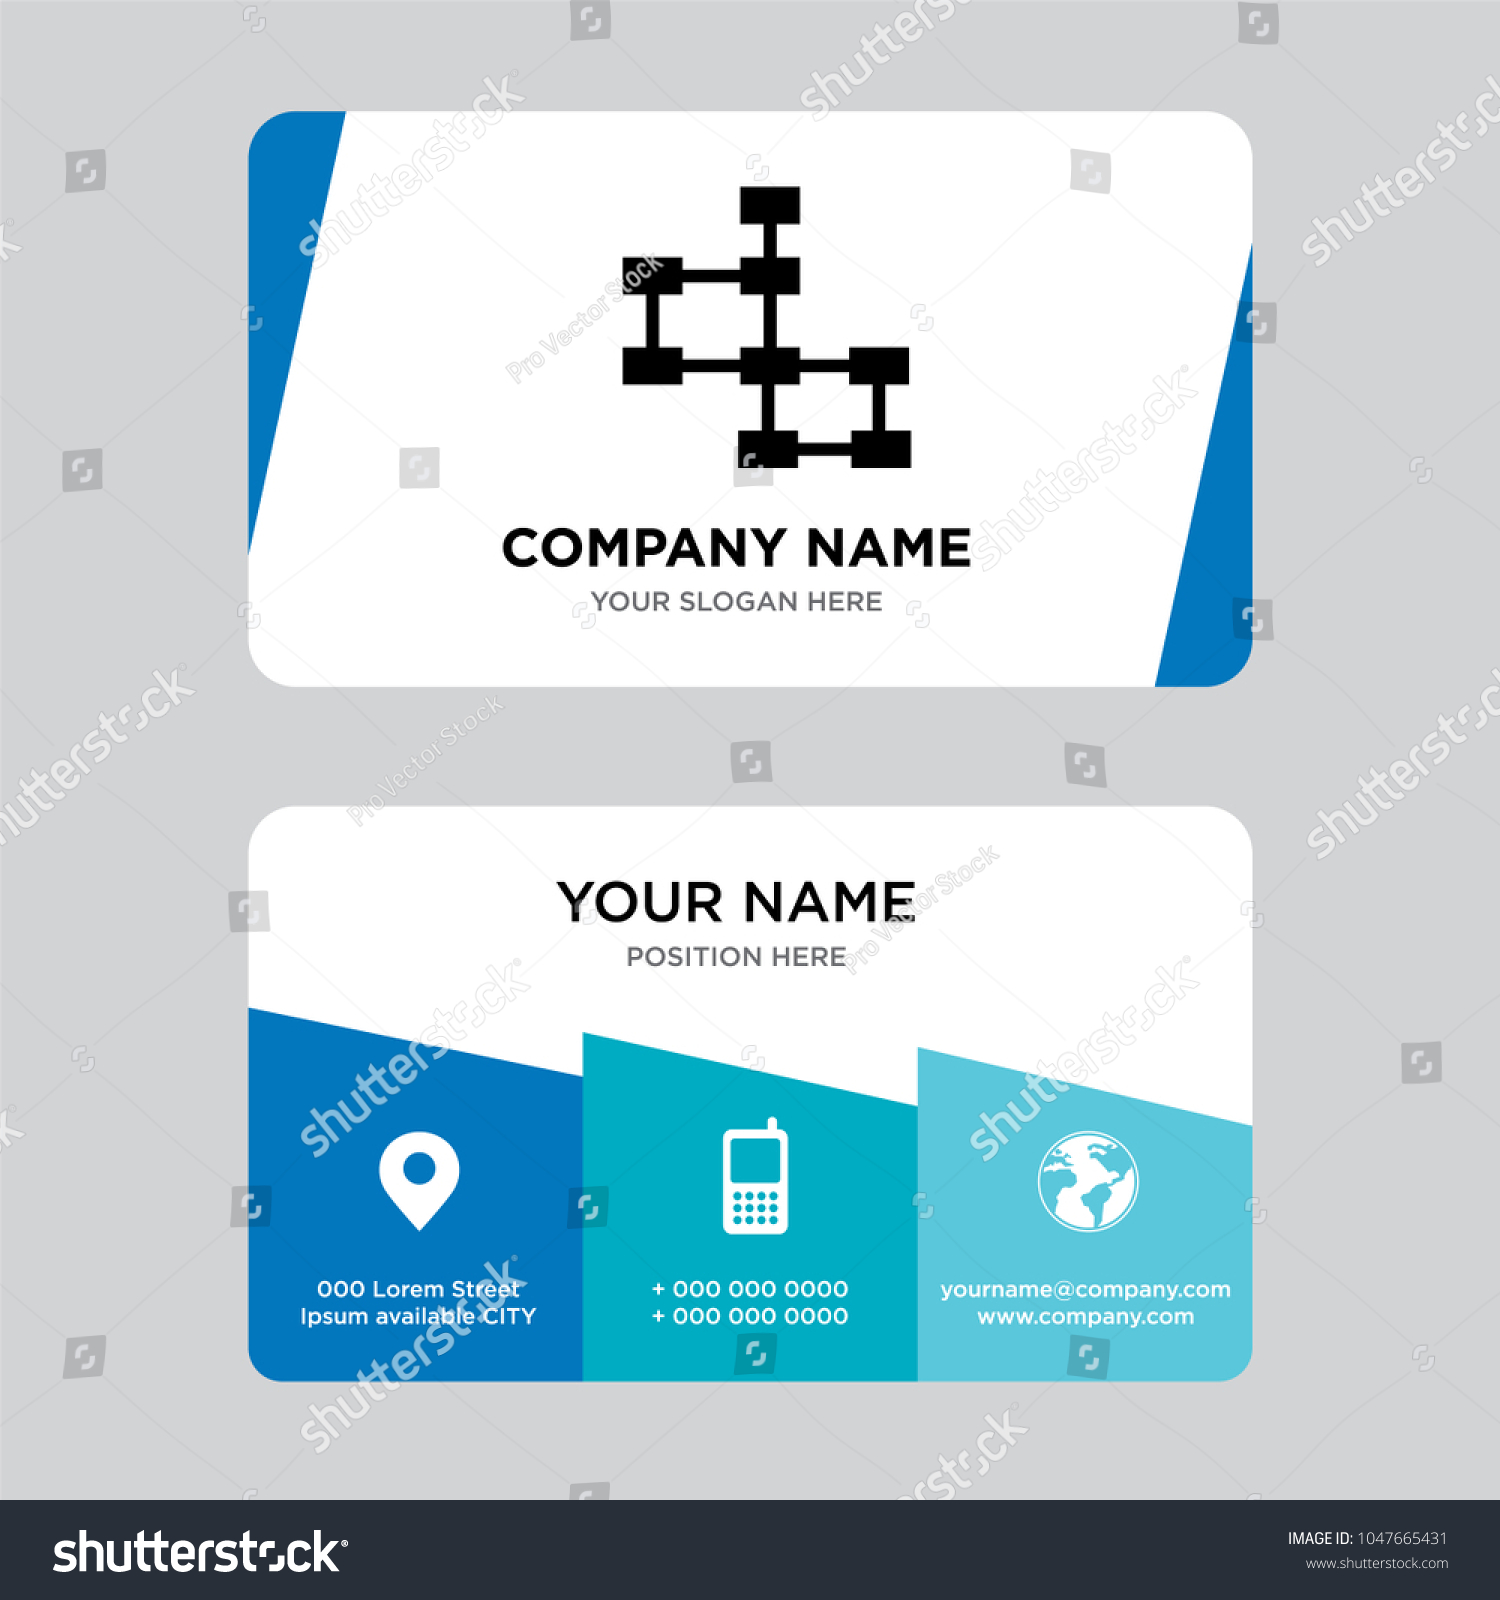 Database Schema Business Card Design Template Stock Vector (2018 ...